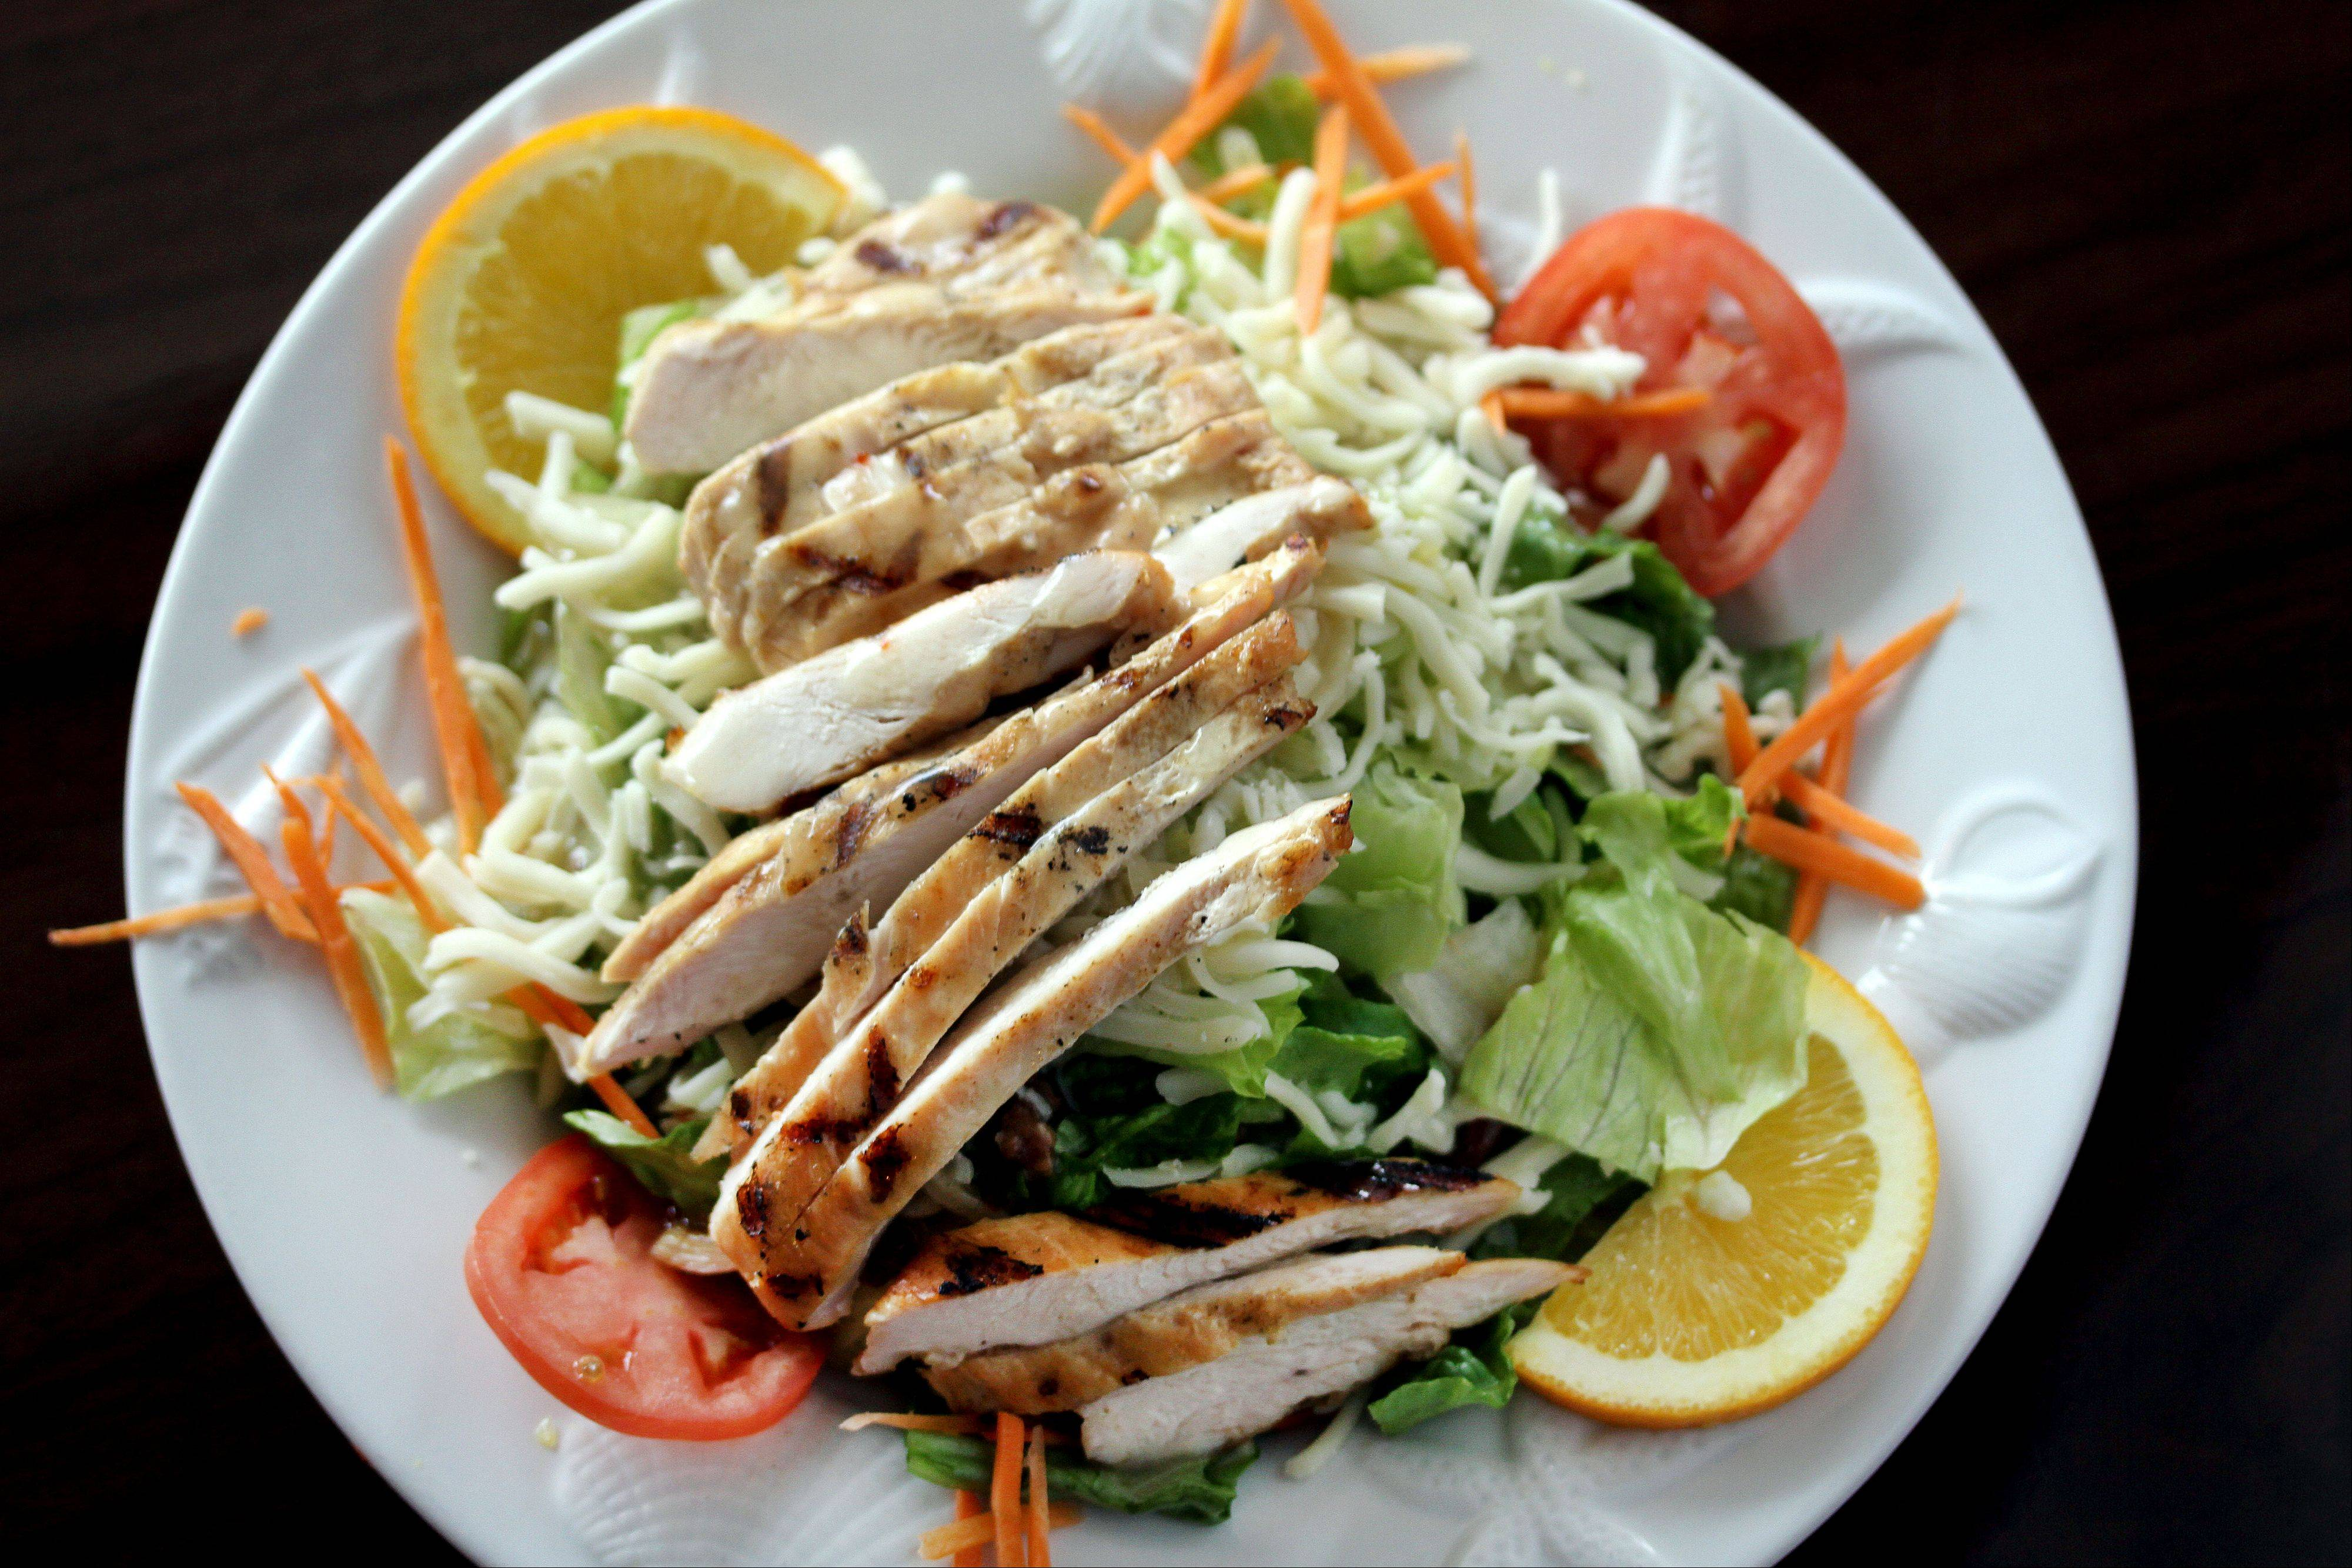 Mango Chicken Salad comes with a fruity vinaigrette at Bacchus Nibbles in Lake Zurich.